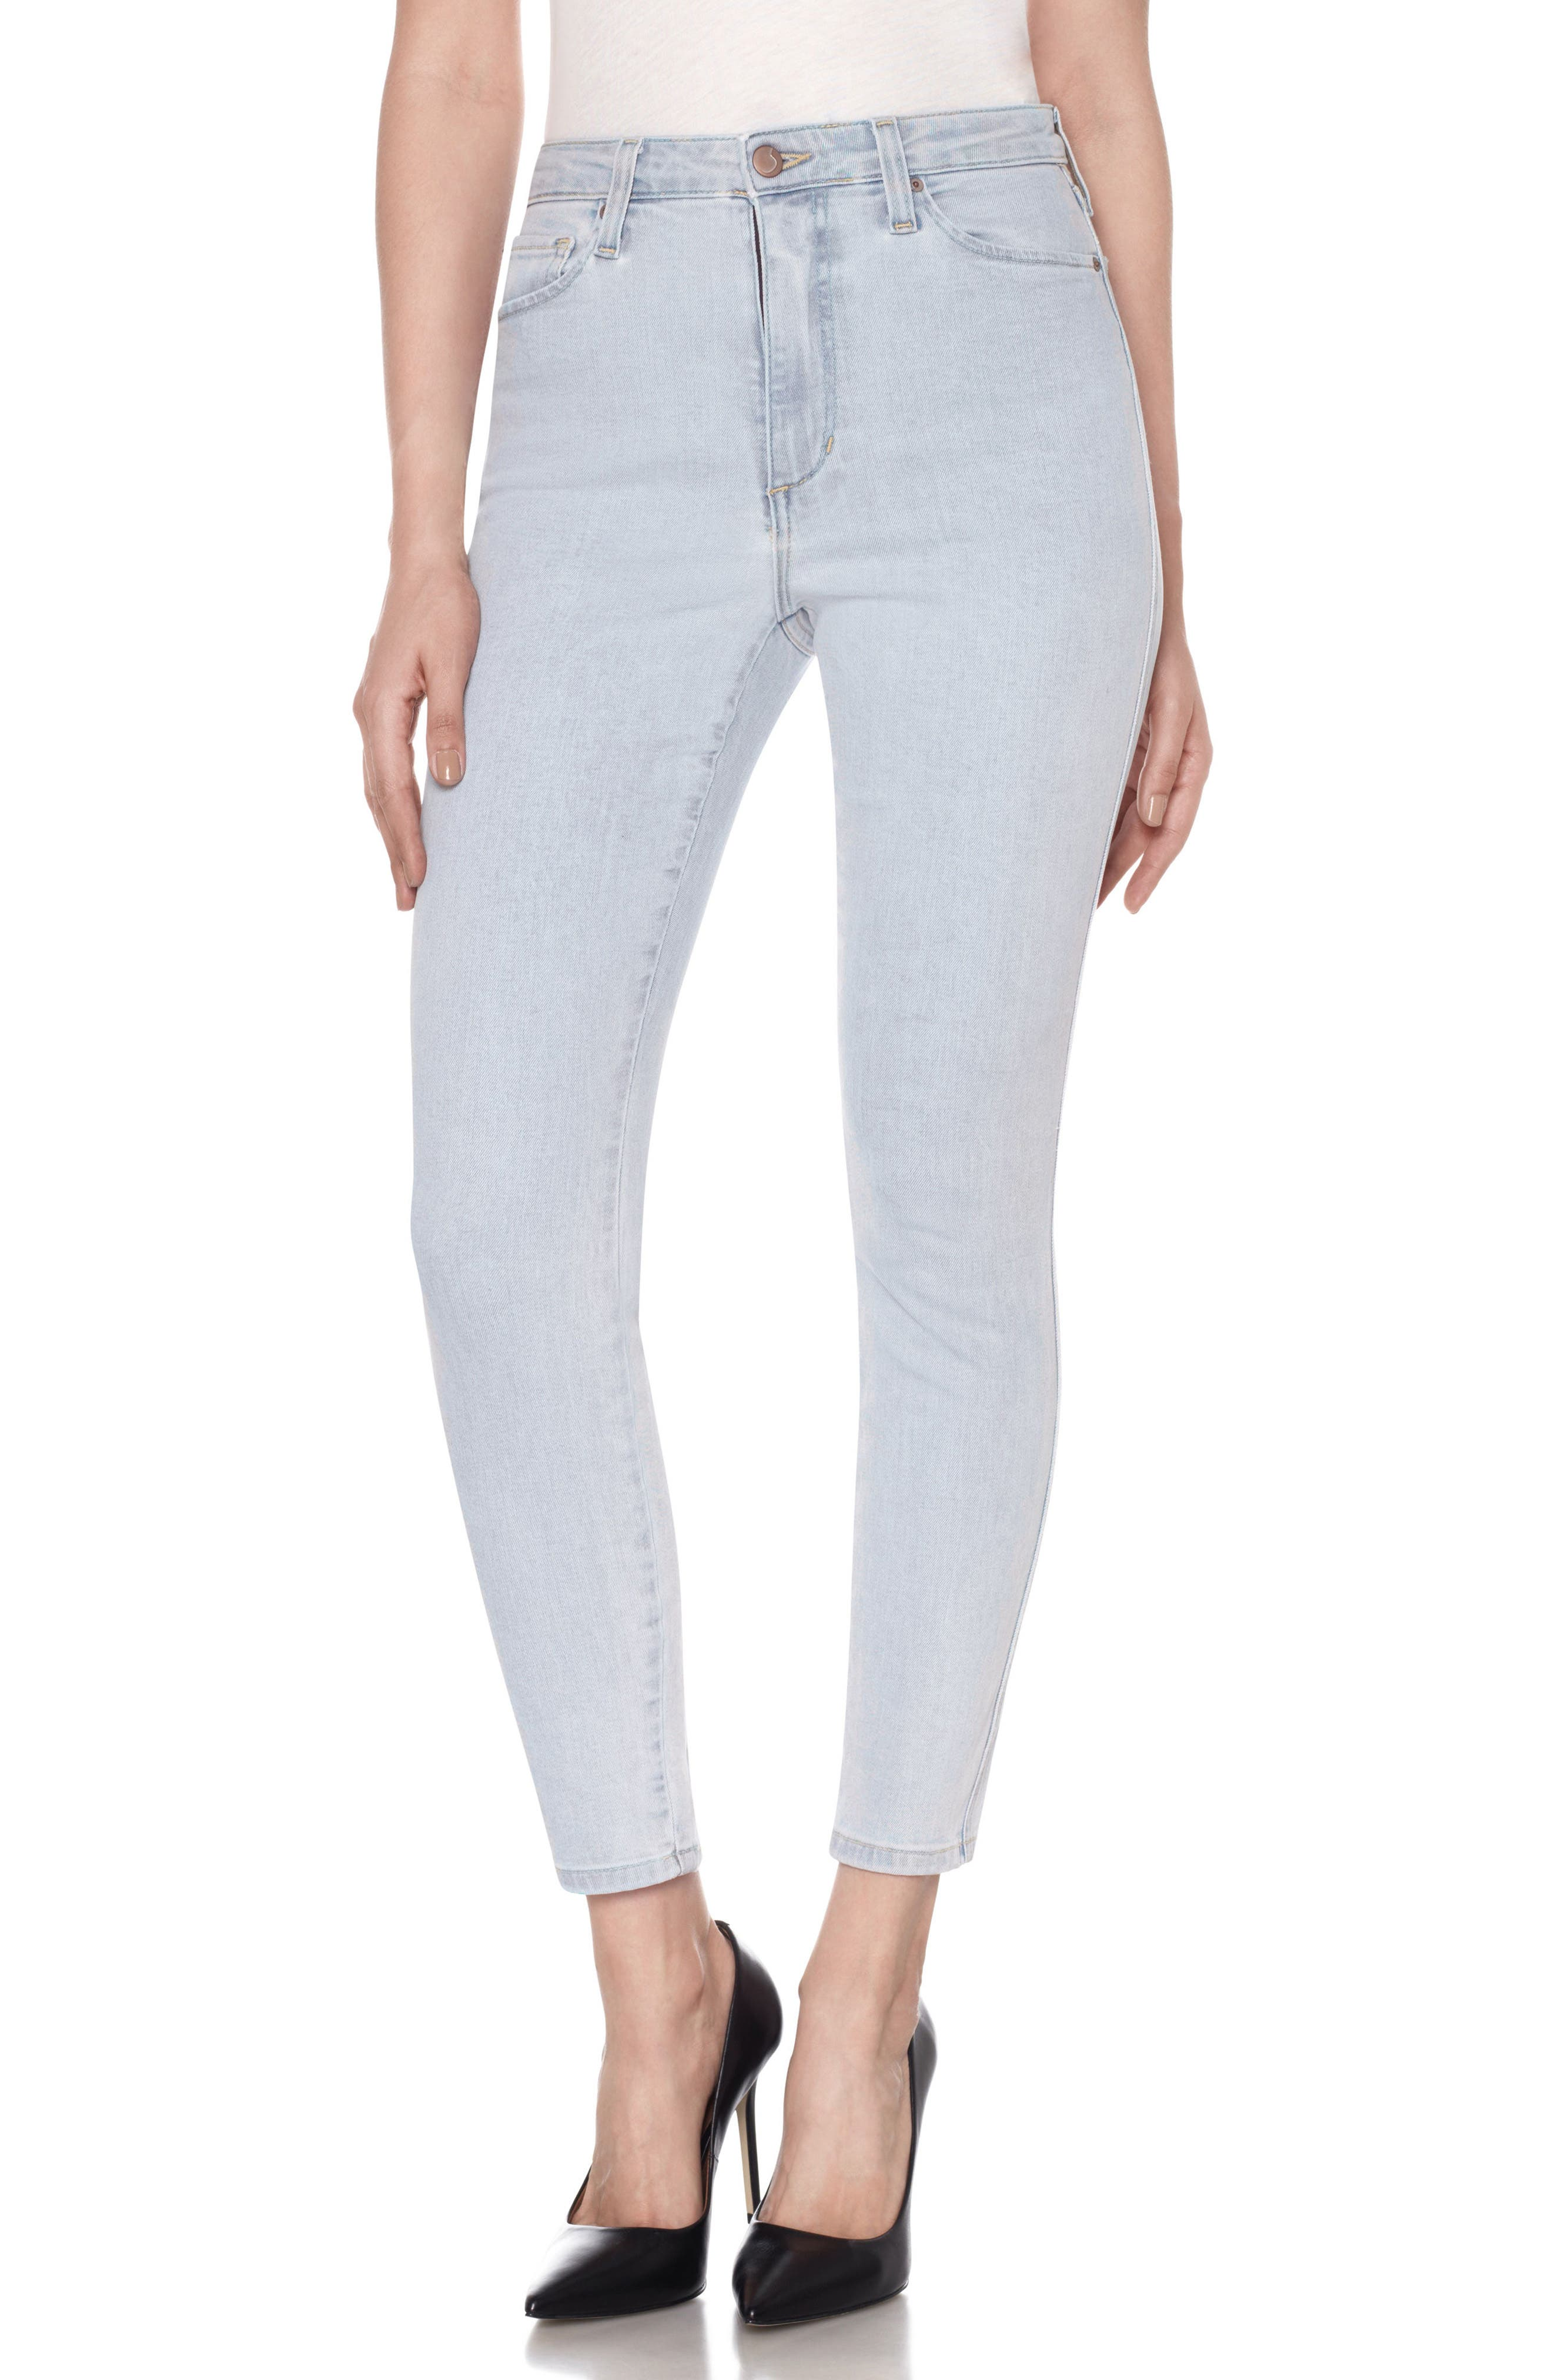 Flawless - Bella High Waist Ankle Skinny Jeans,                             Main thumbnail 1, color,                             415